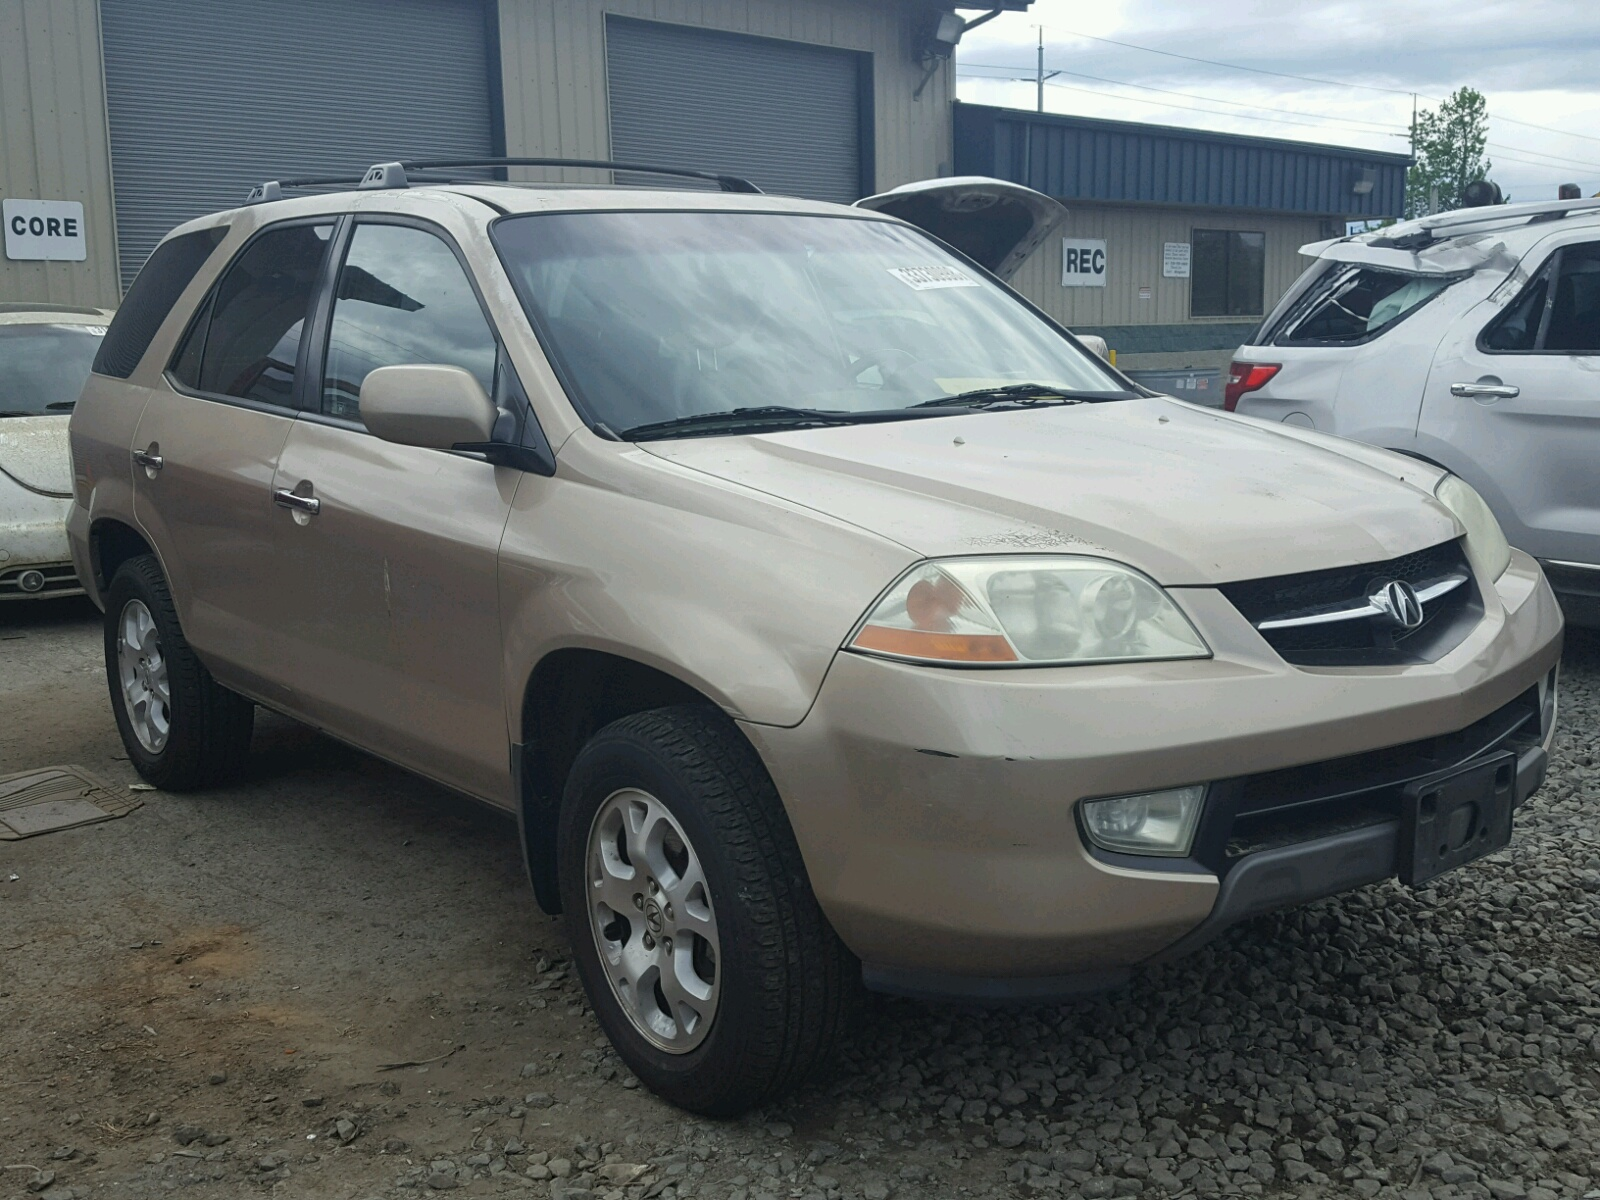 Acura MDX Touring For Sale At Copart Eugene OR Lot - Acura mdx 2001 for sale